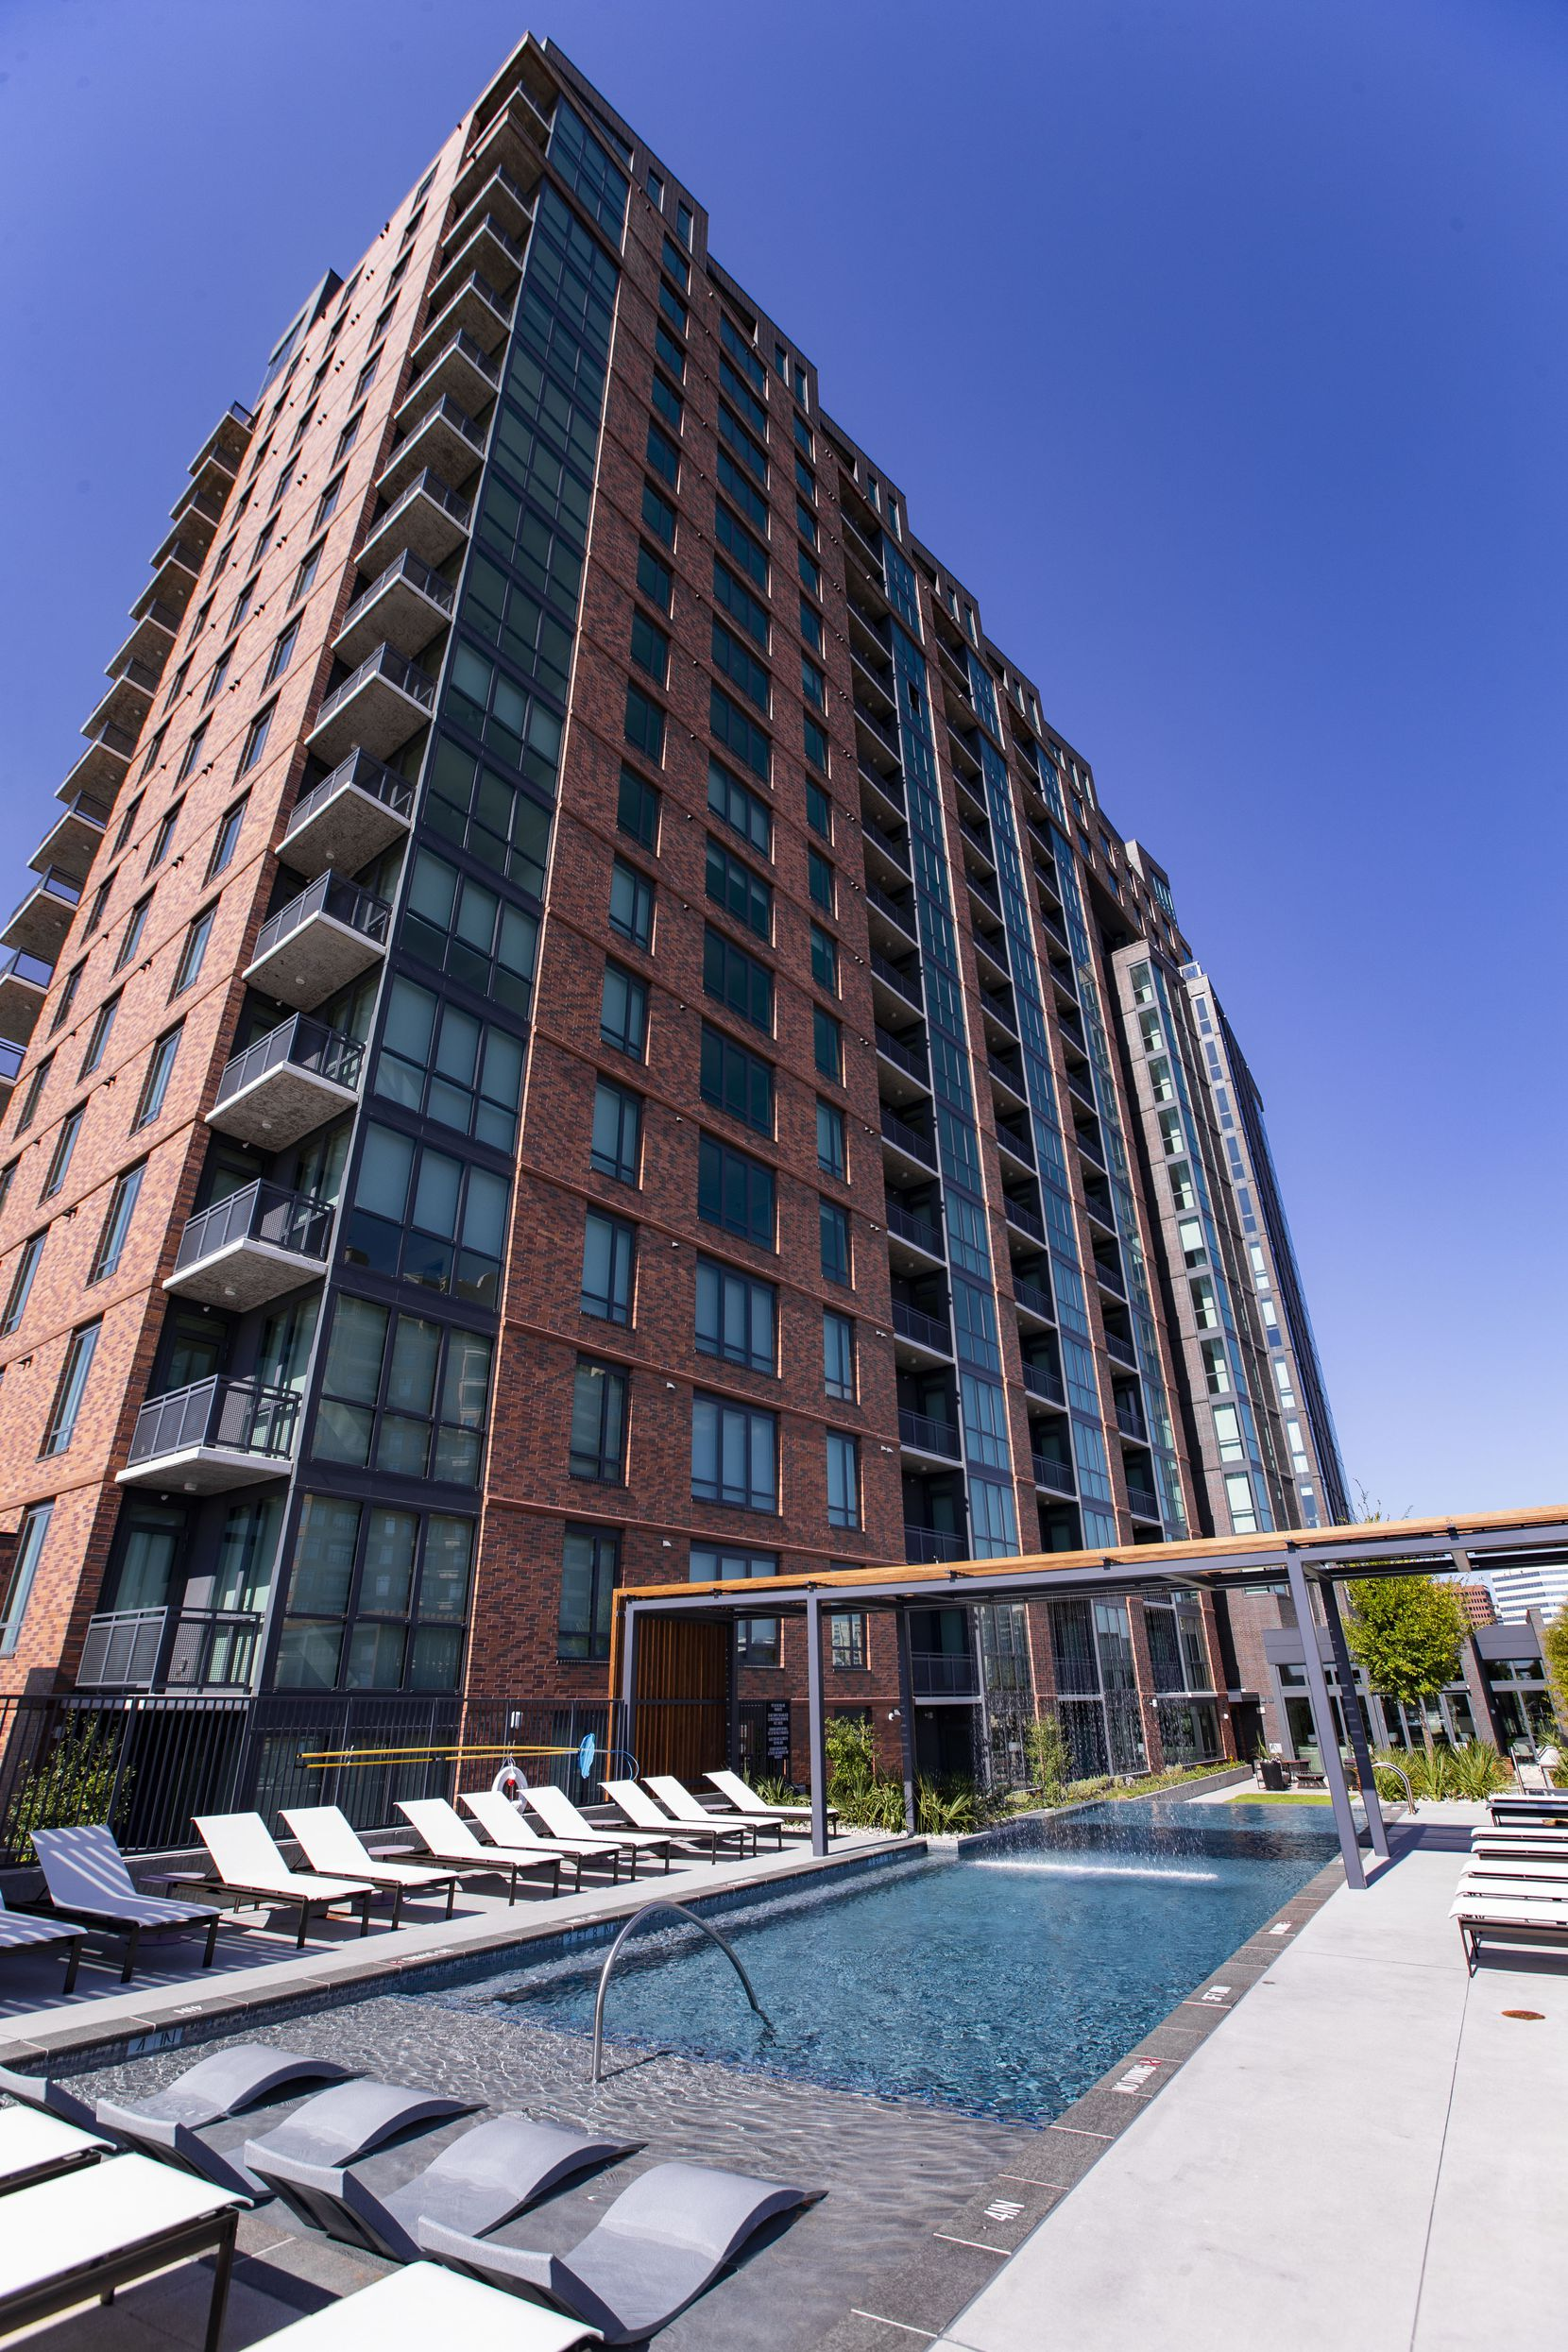 The pool at the Aster, a new  luxury high rise apartment building in Dallas' Oak Lawn district.